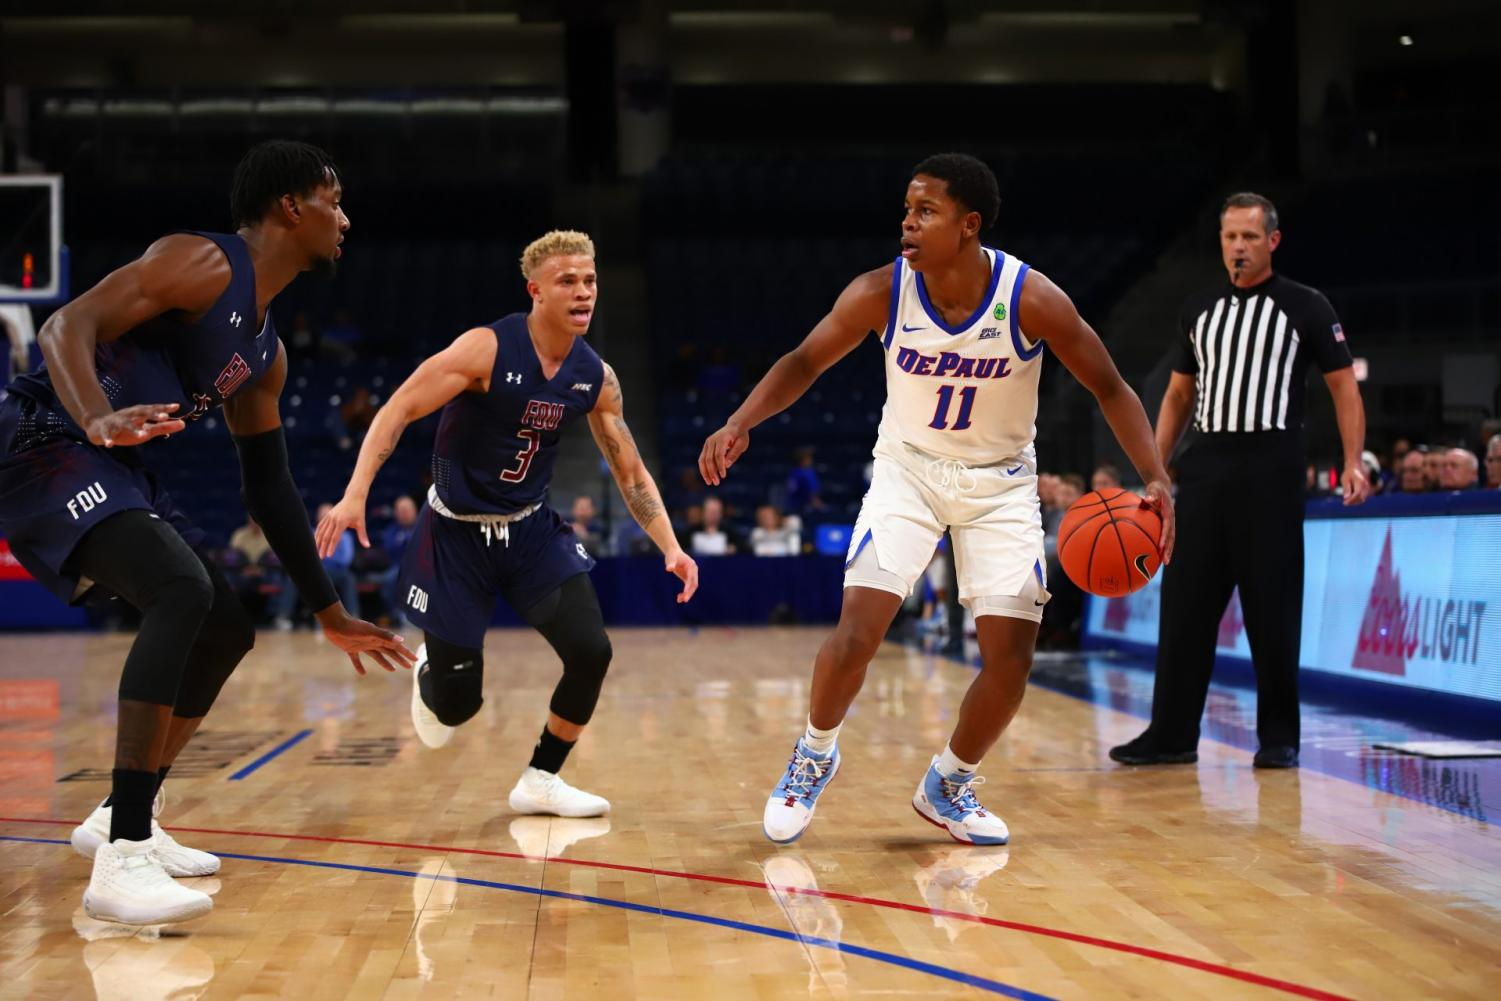 DePaul junior guard Charlie Moore dribbles the ball against Fairleigh Dickinson on Friday at Wiintrust Arena. The Blue Demons won the game 70-59.